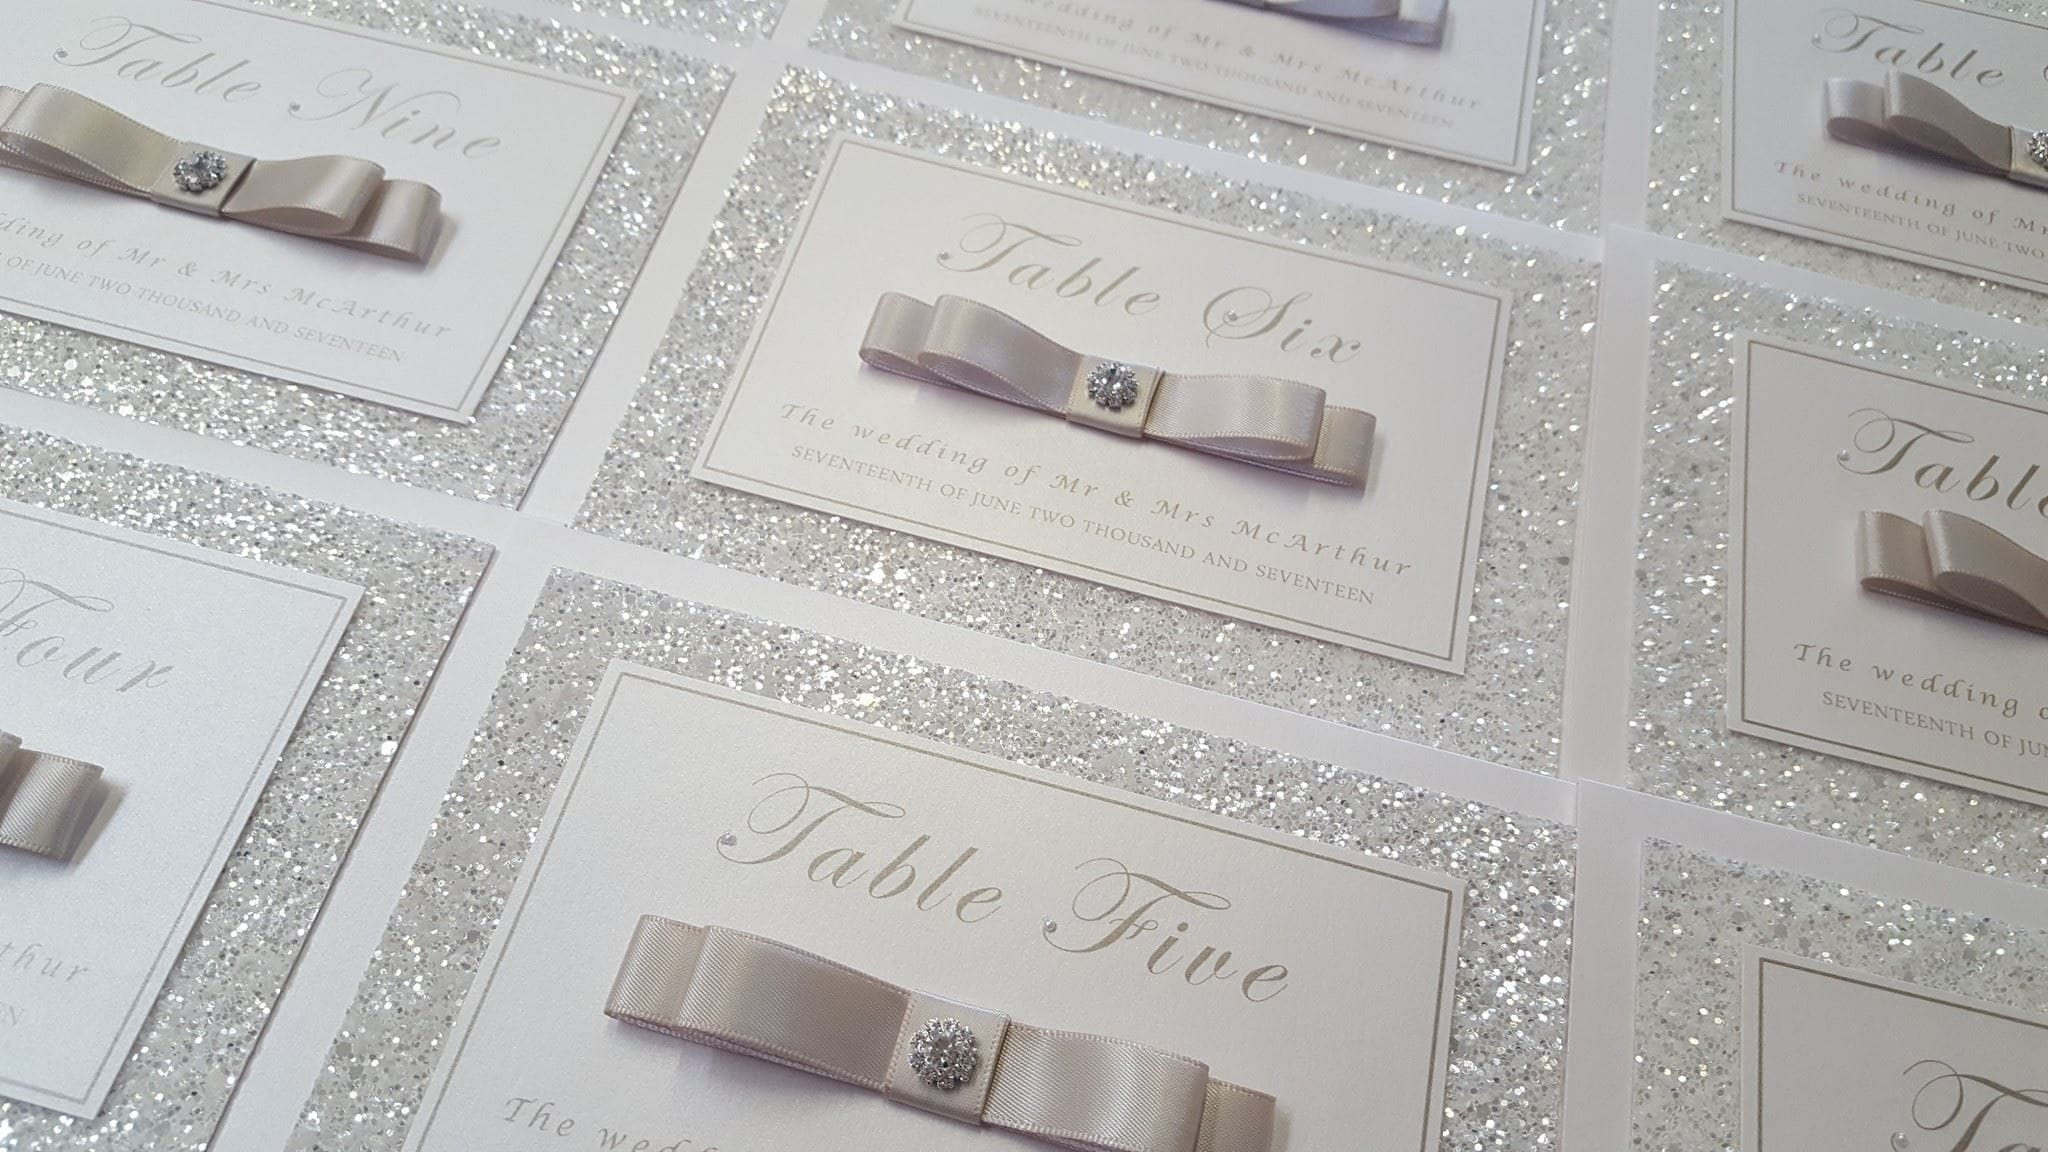 Wedding Business Dollybird Stationery Are Living The Dream - sparkly wedding invitations